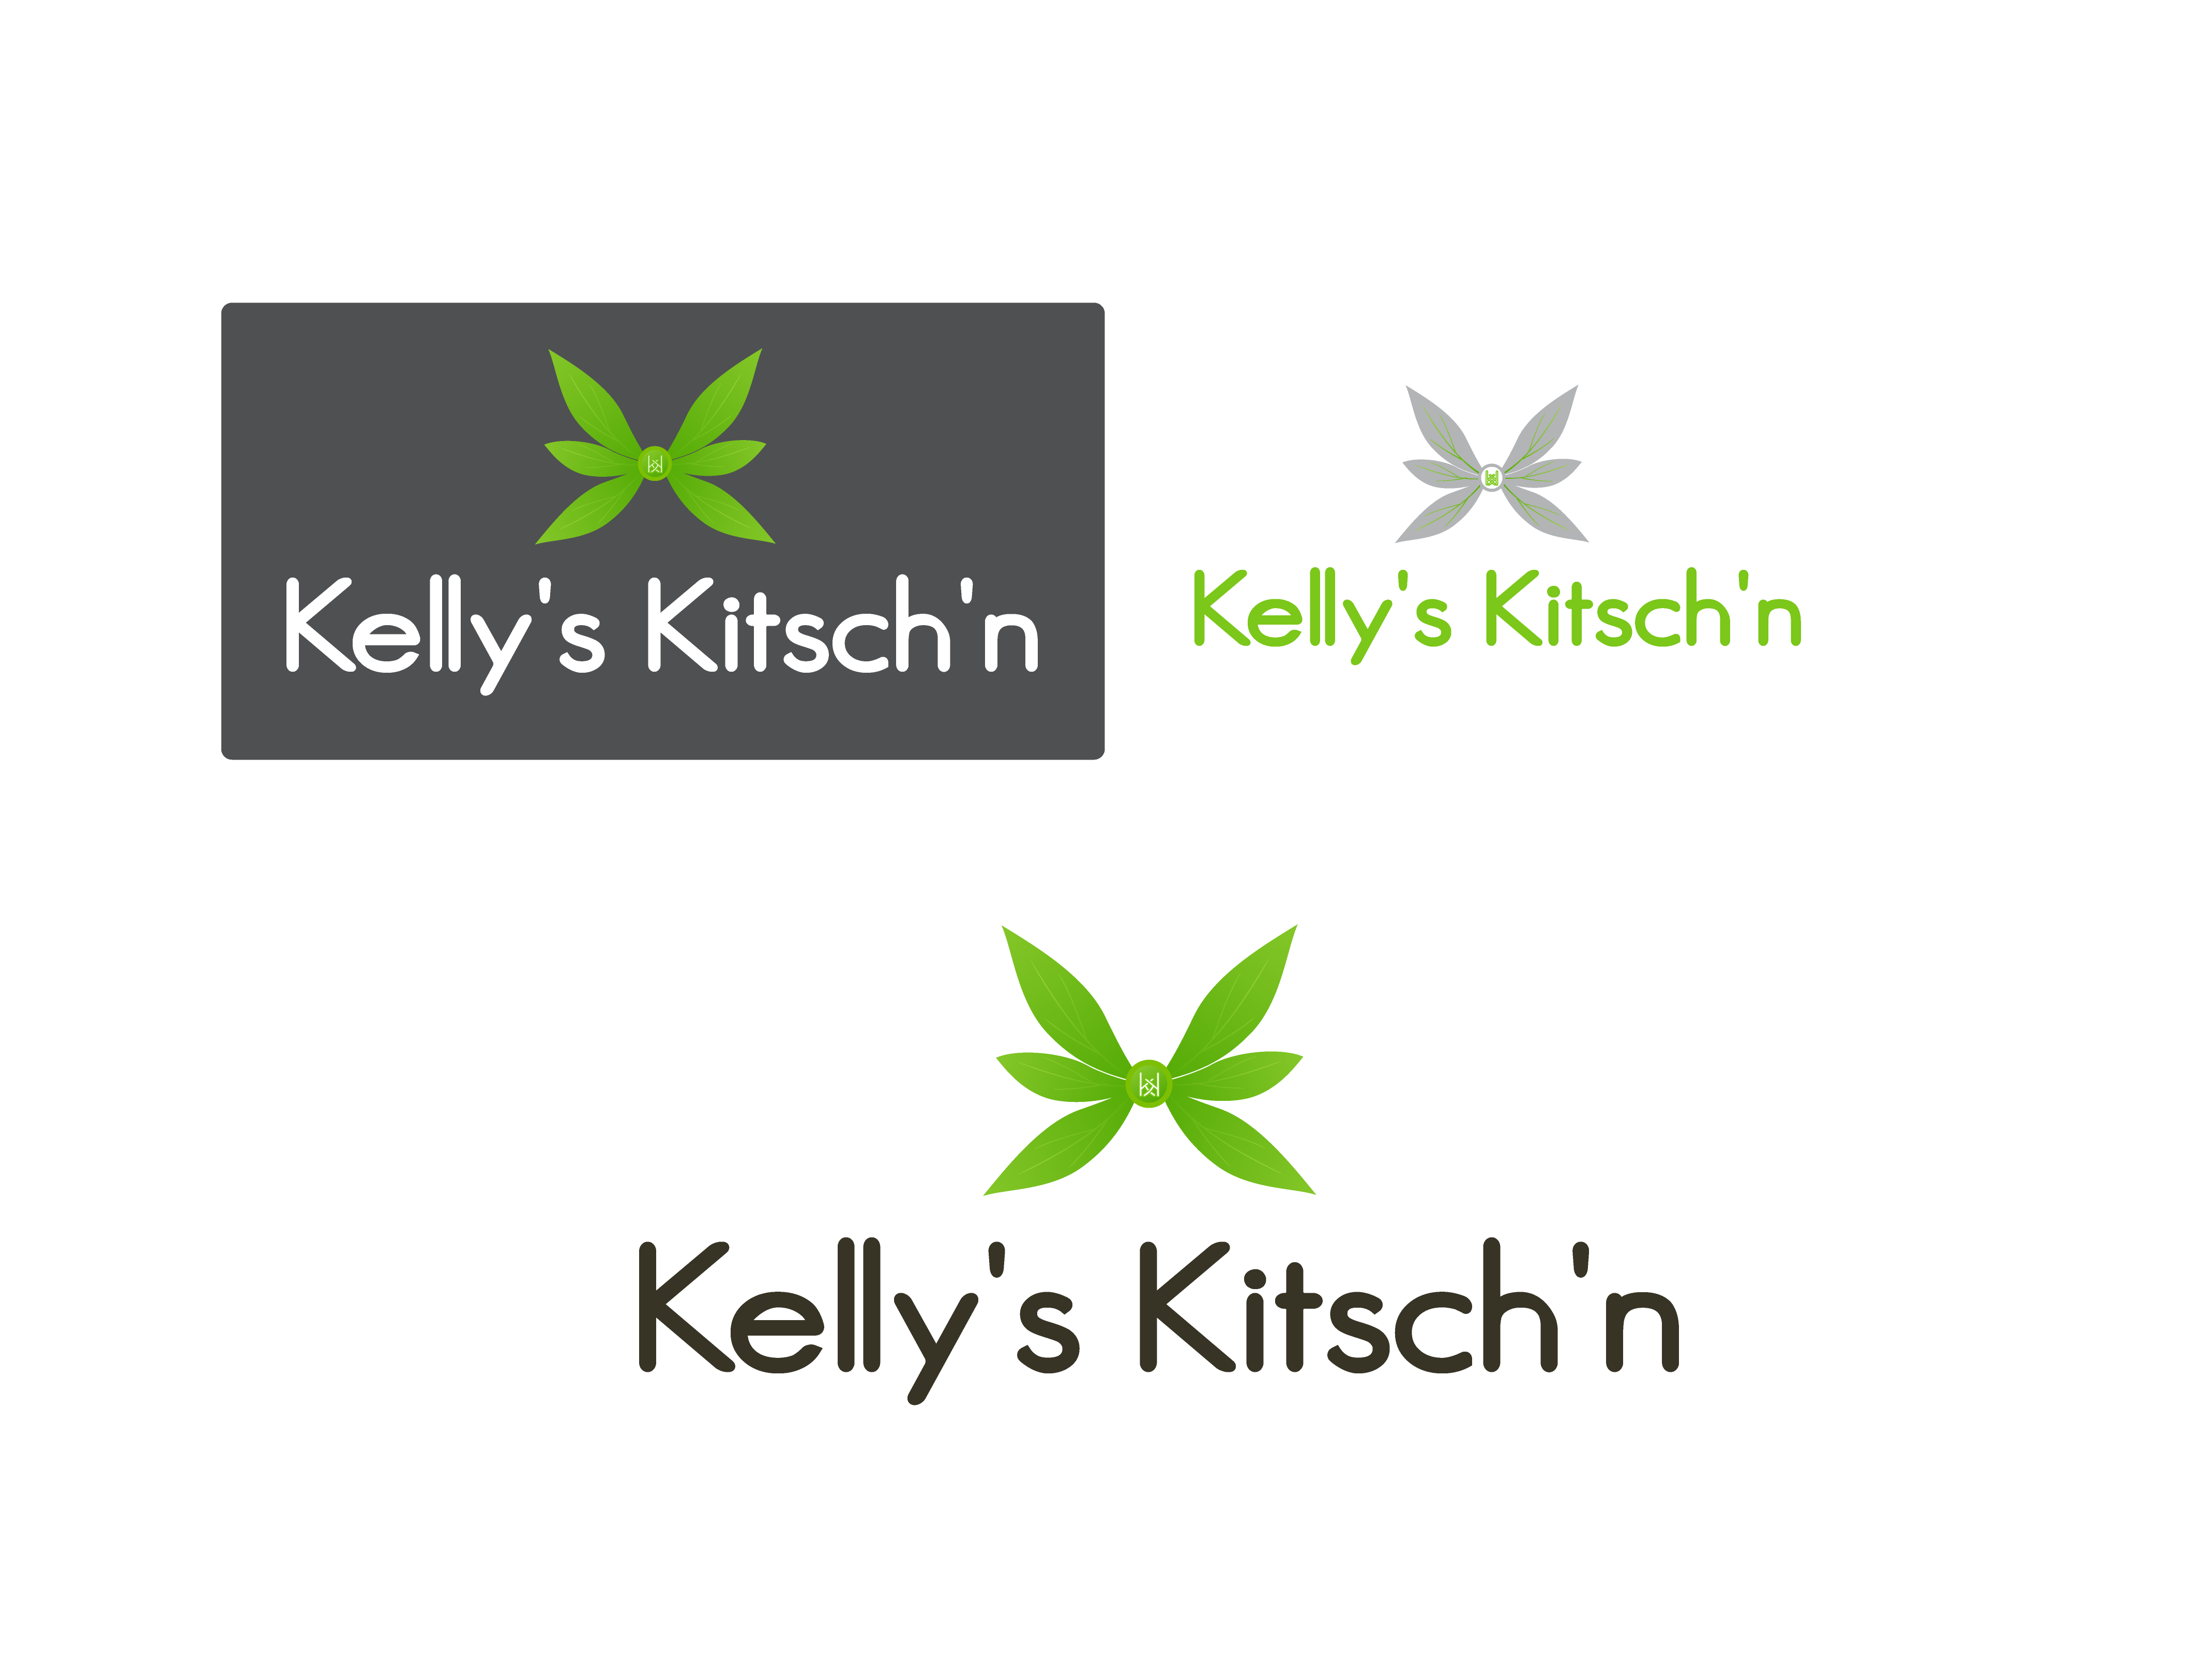 Logo Design by 354studio - Entry No. 16 in the Logo Design Contest Unique Logo Design Wanted for Kelly's Kitsch'n.